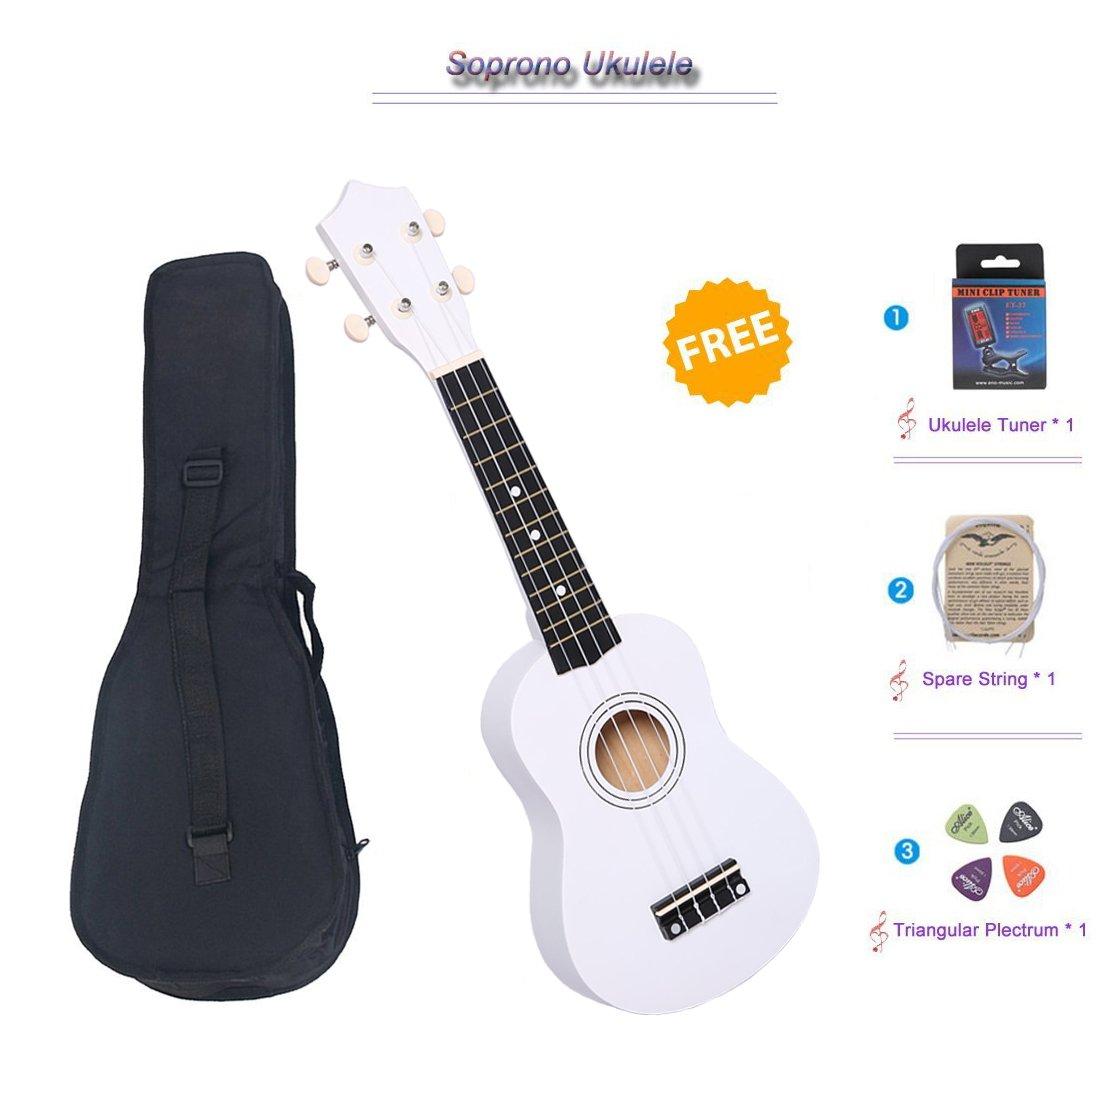 NOT HOME® 21 Soprano Ukulele with a Carrying Bag and a Digital Tuner, Specially Designed for Kids, Students and Beginners (White) XLY XLY-15982